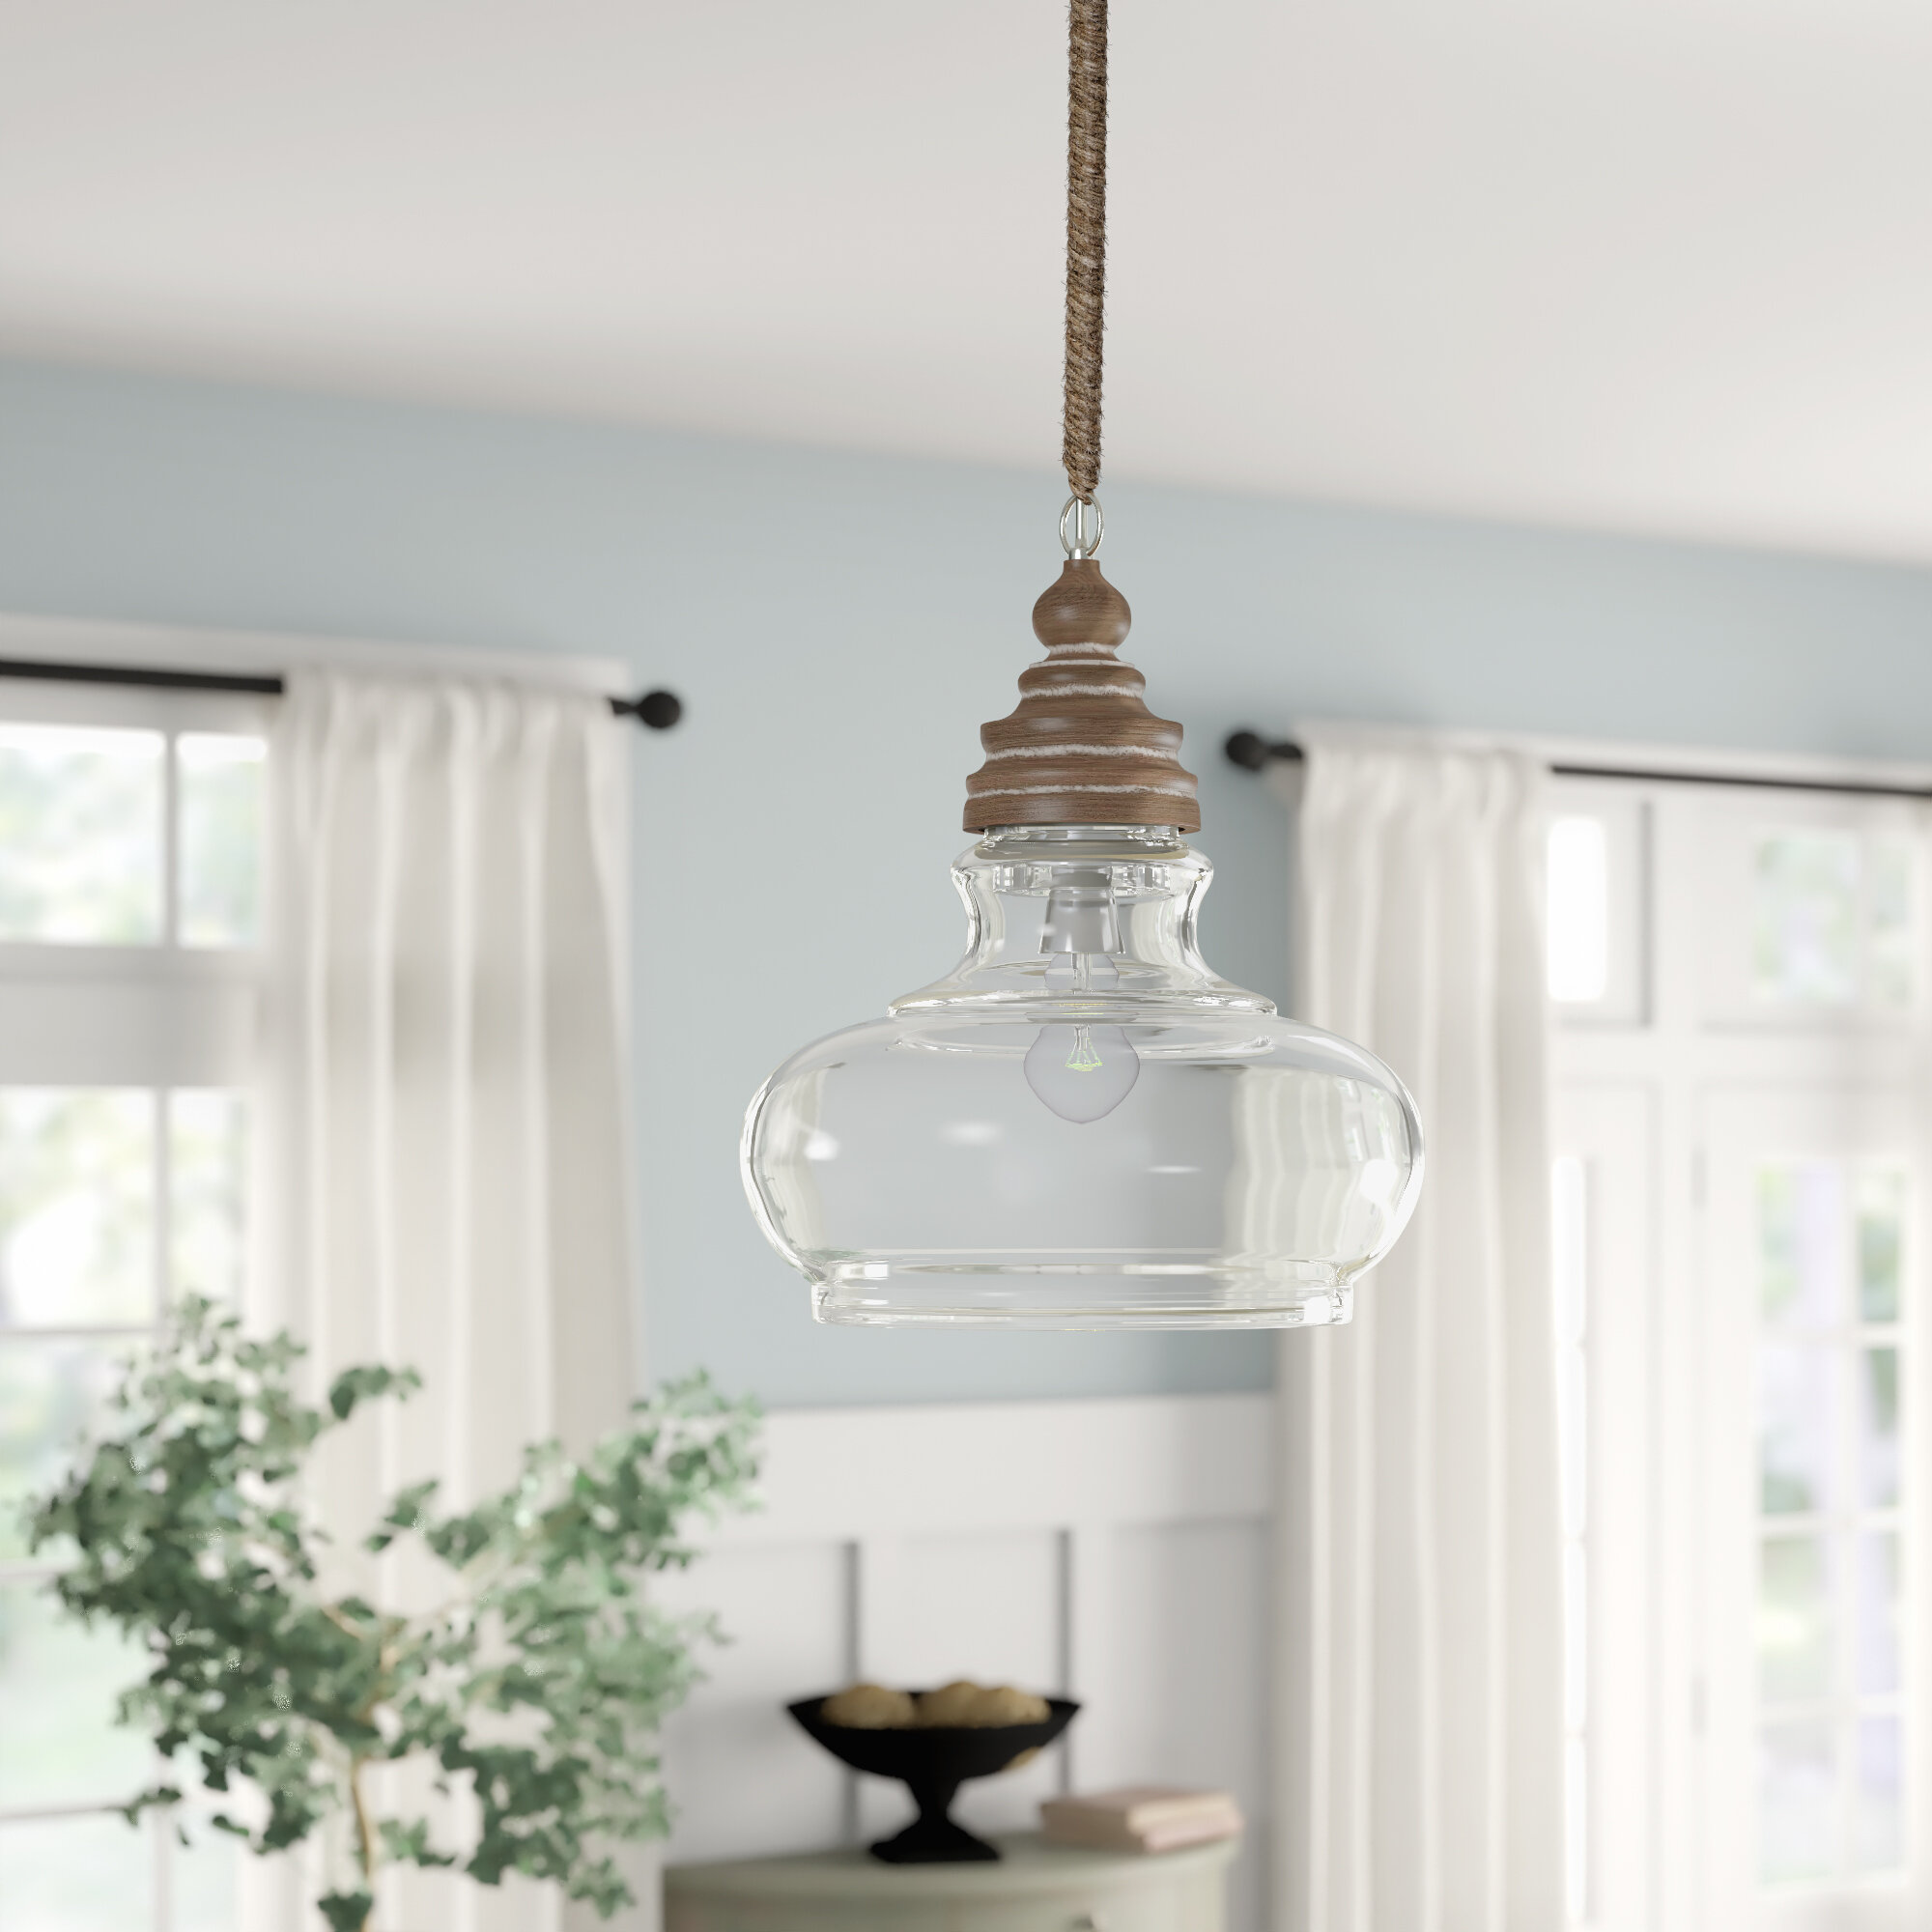 Pendant Light For Kitchen Island Liylan Industrial Vintage Farmhouse Dinning Room Hanging Lighting Fixtures Oil Rubbed Bronze With Clear Seeded Glass Pendant Lights